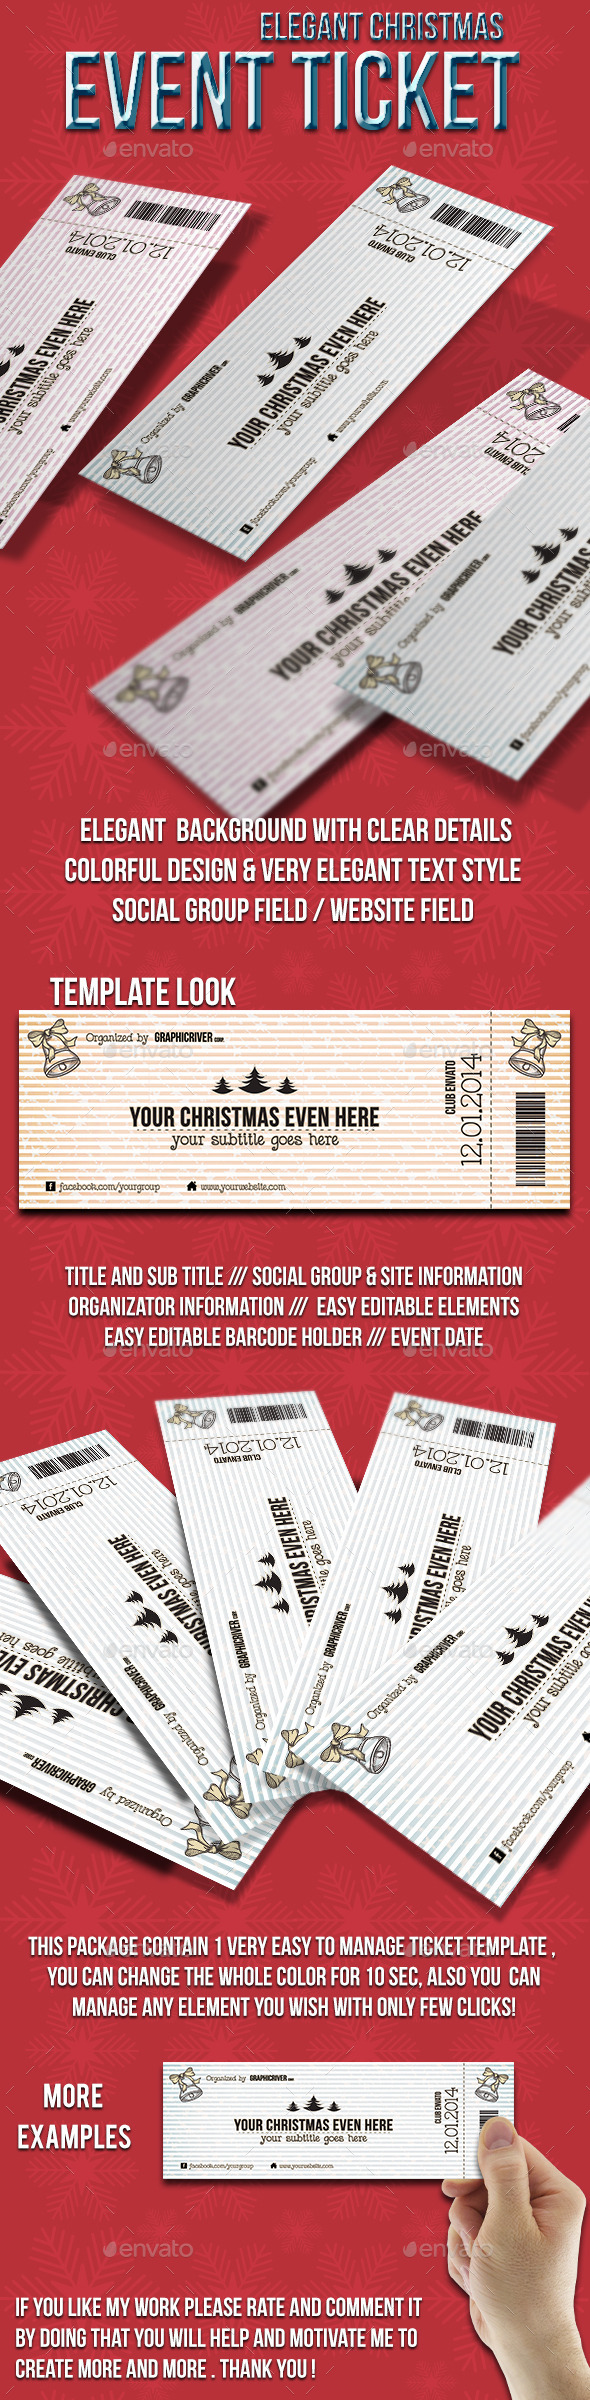 GraphicRiver Elegant Christmas event ticket 9716645